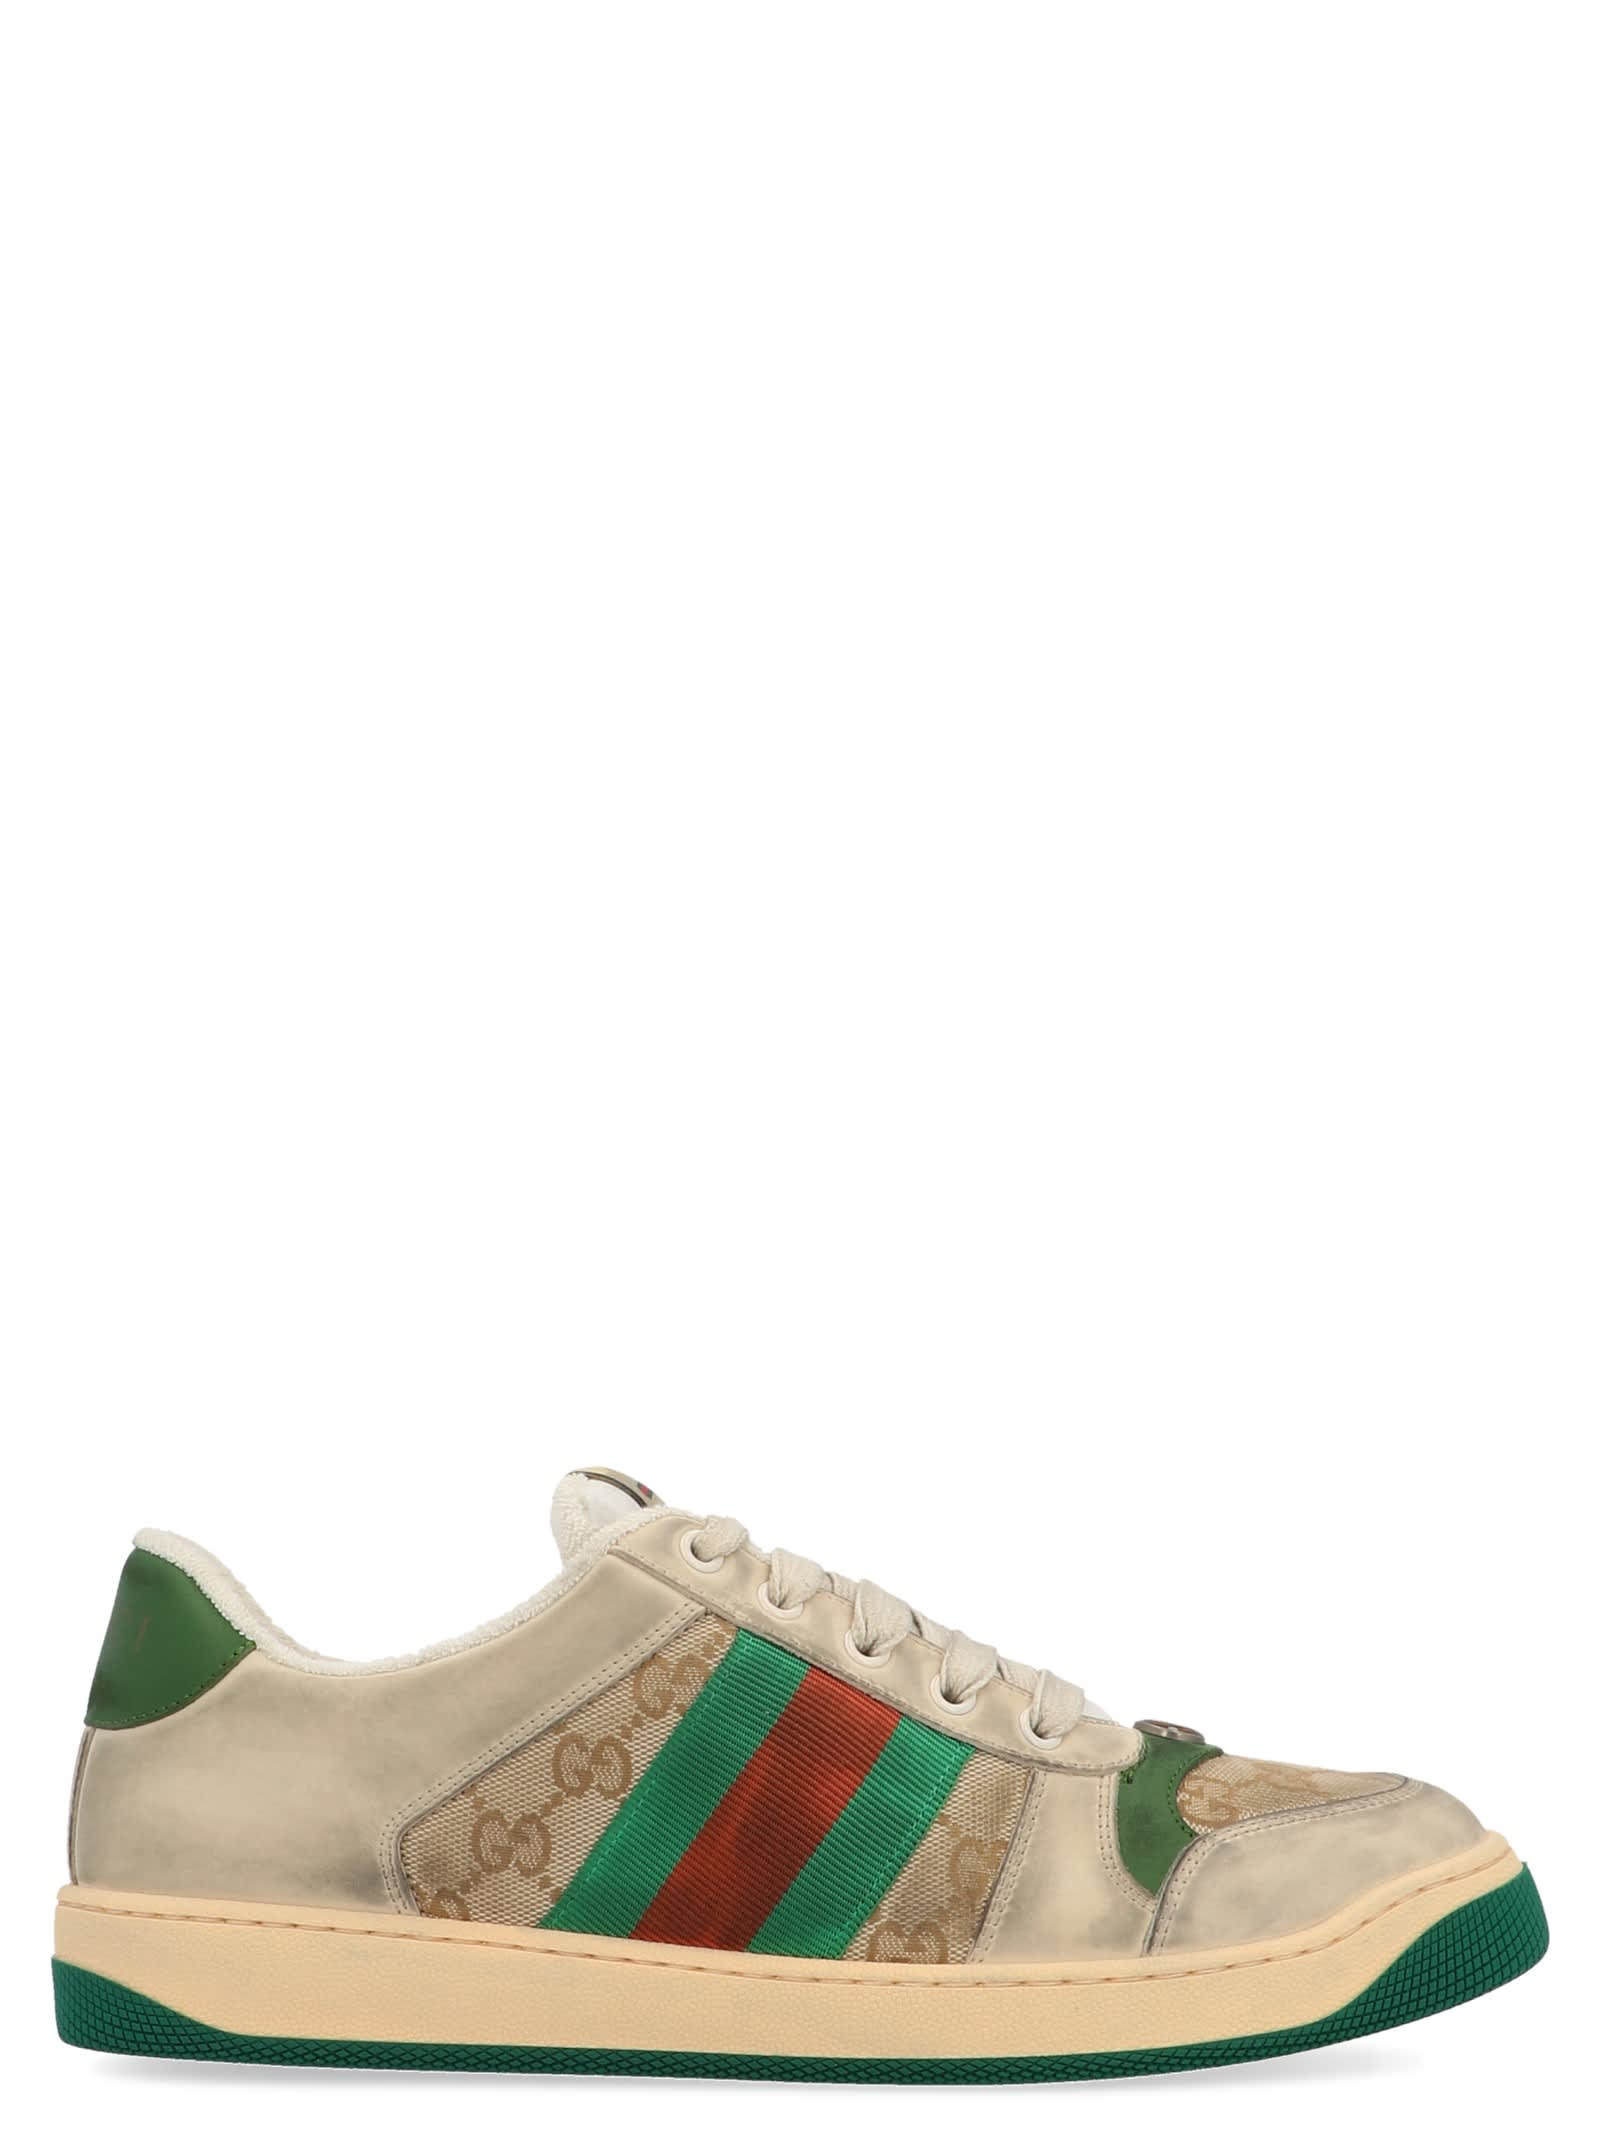 Gucci Leathers SCREENER SHOES